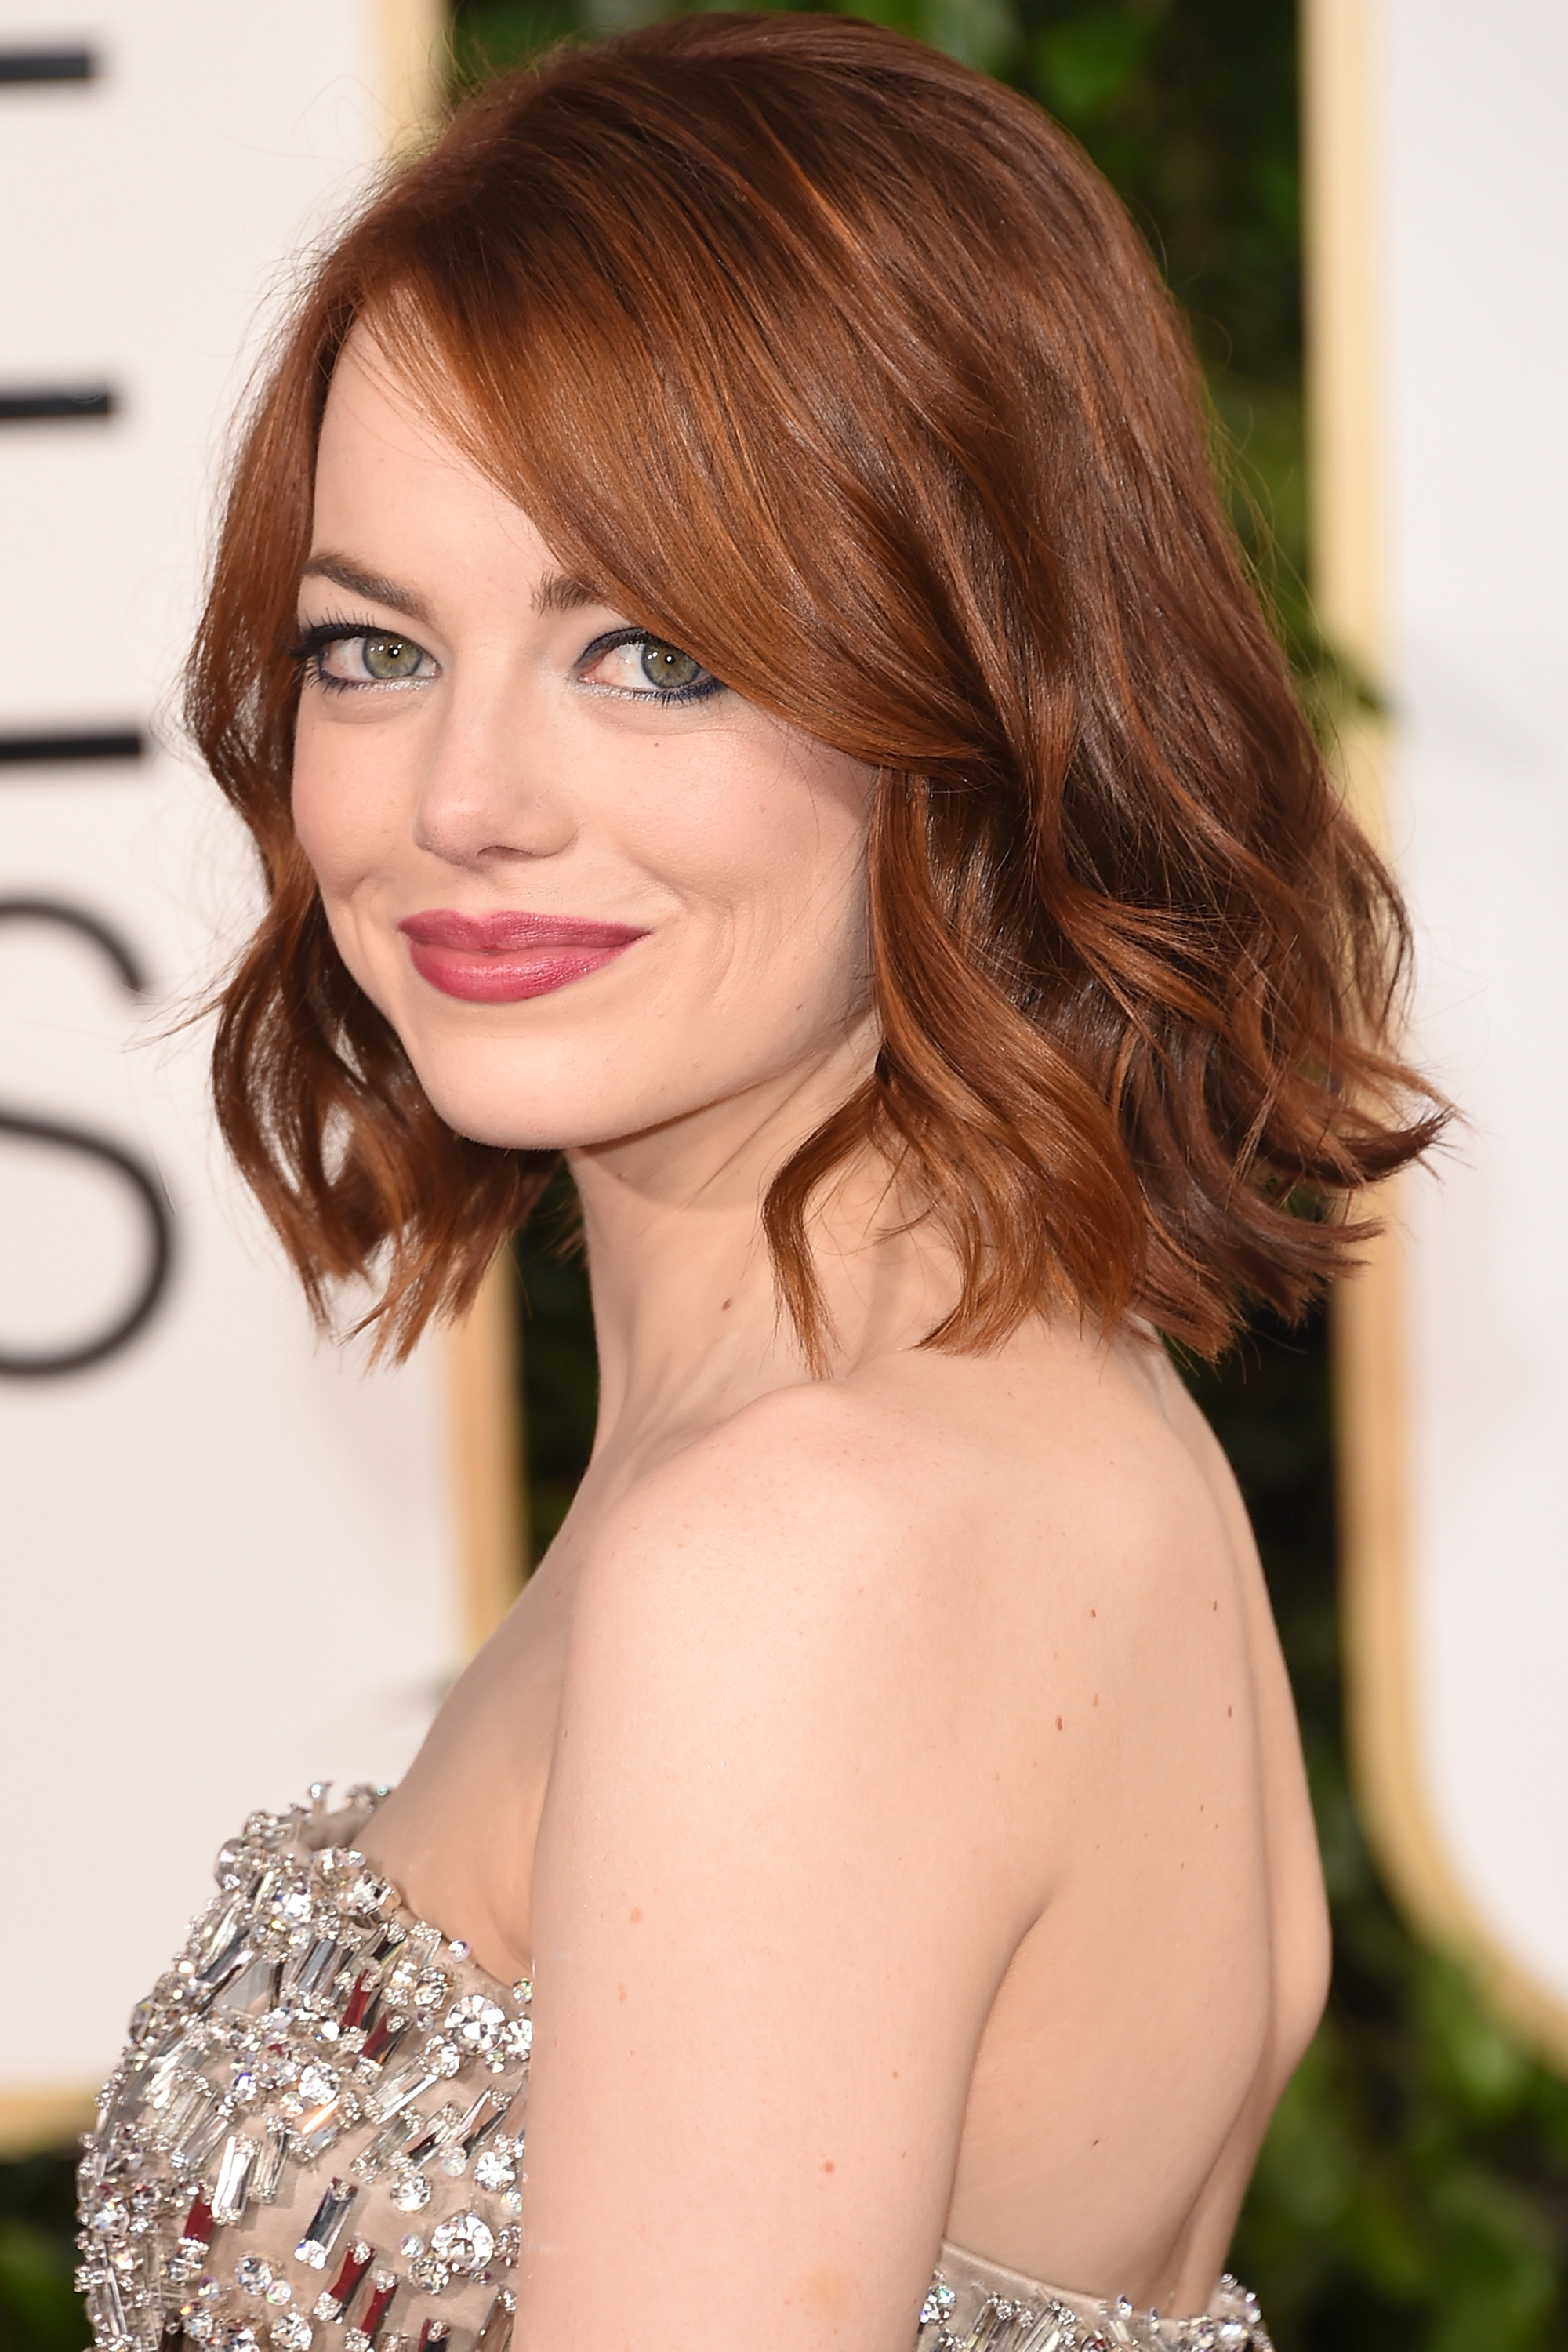 Celebrity Hair Color : Best Hair Colors for Summer 2015 - Celebrity Hair Color Trends for ...